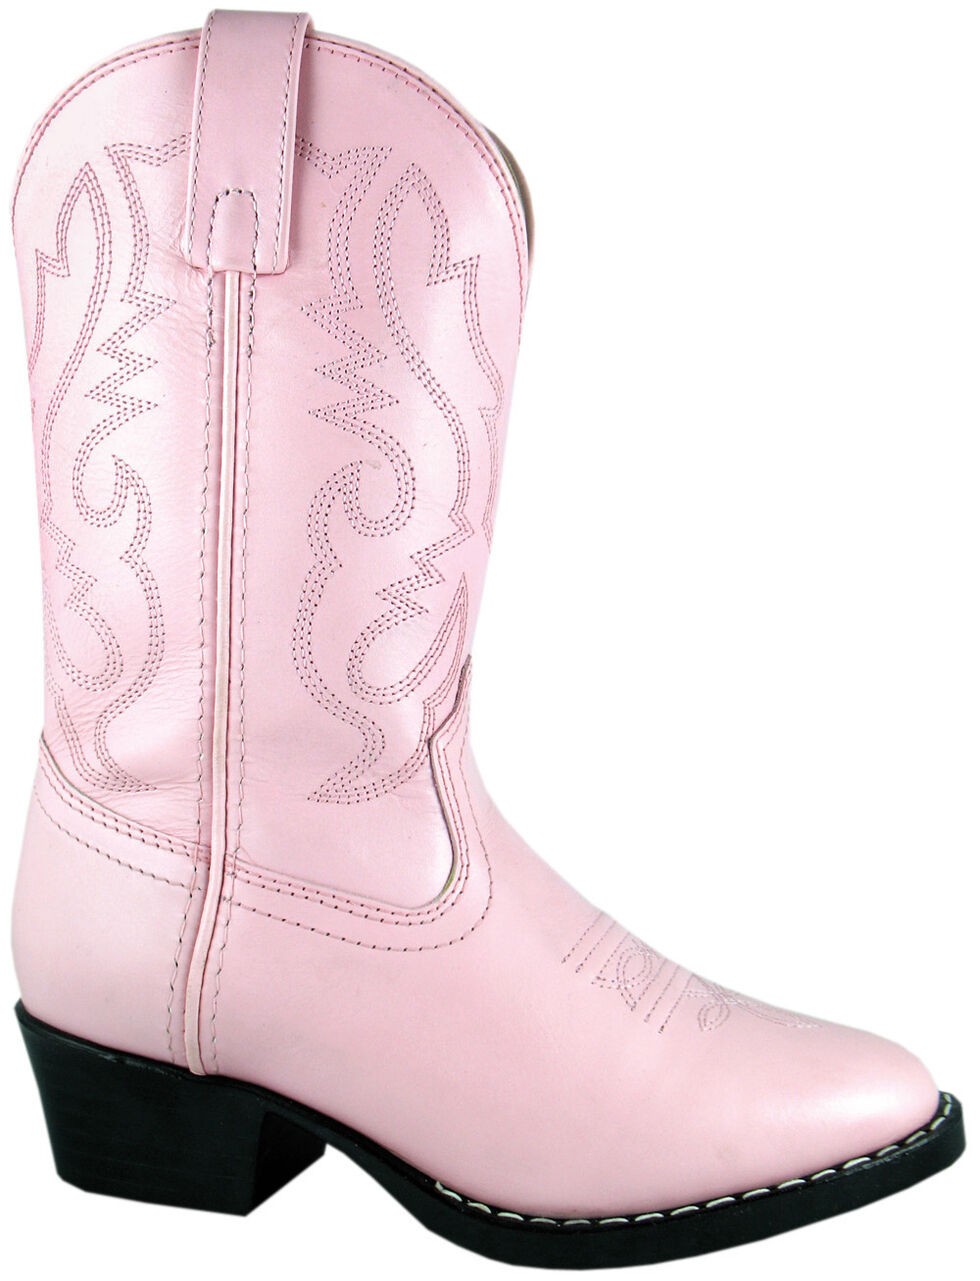 Smoky Mountain Girls' Denver Western Boots - Round Toe, Pink, hi-res